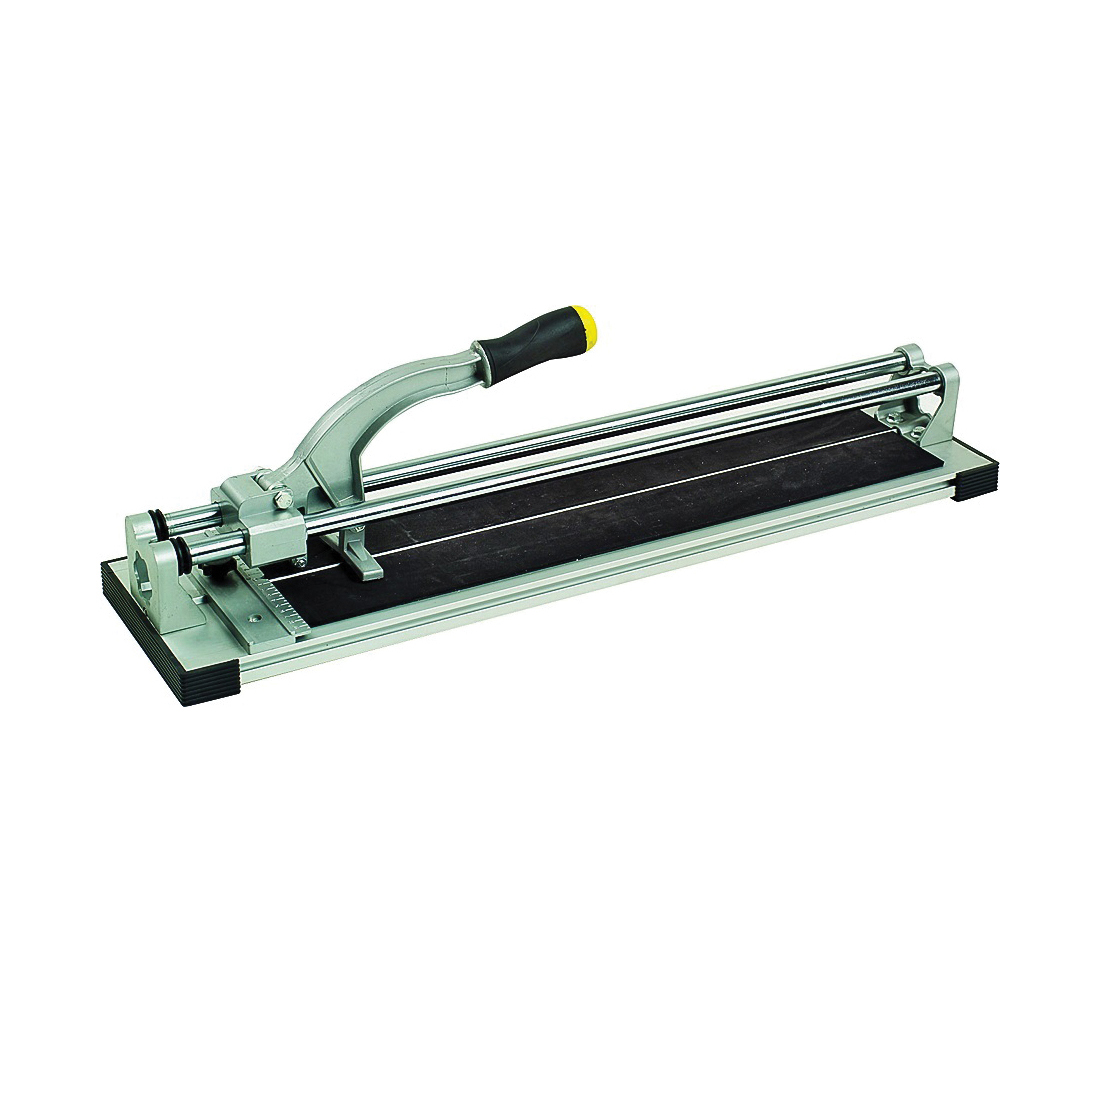 Picture of M-D 49047 Tile Cutter, 20 in Cutting Capacity, Cut Material: Steel, Black/Yellow